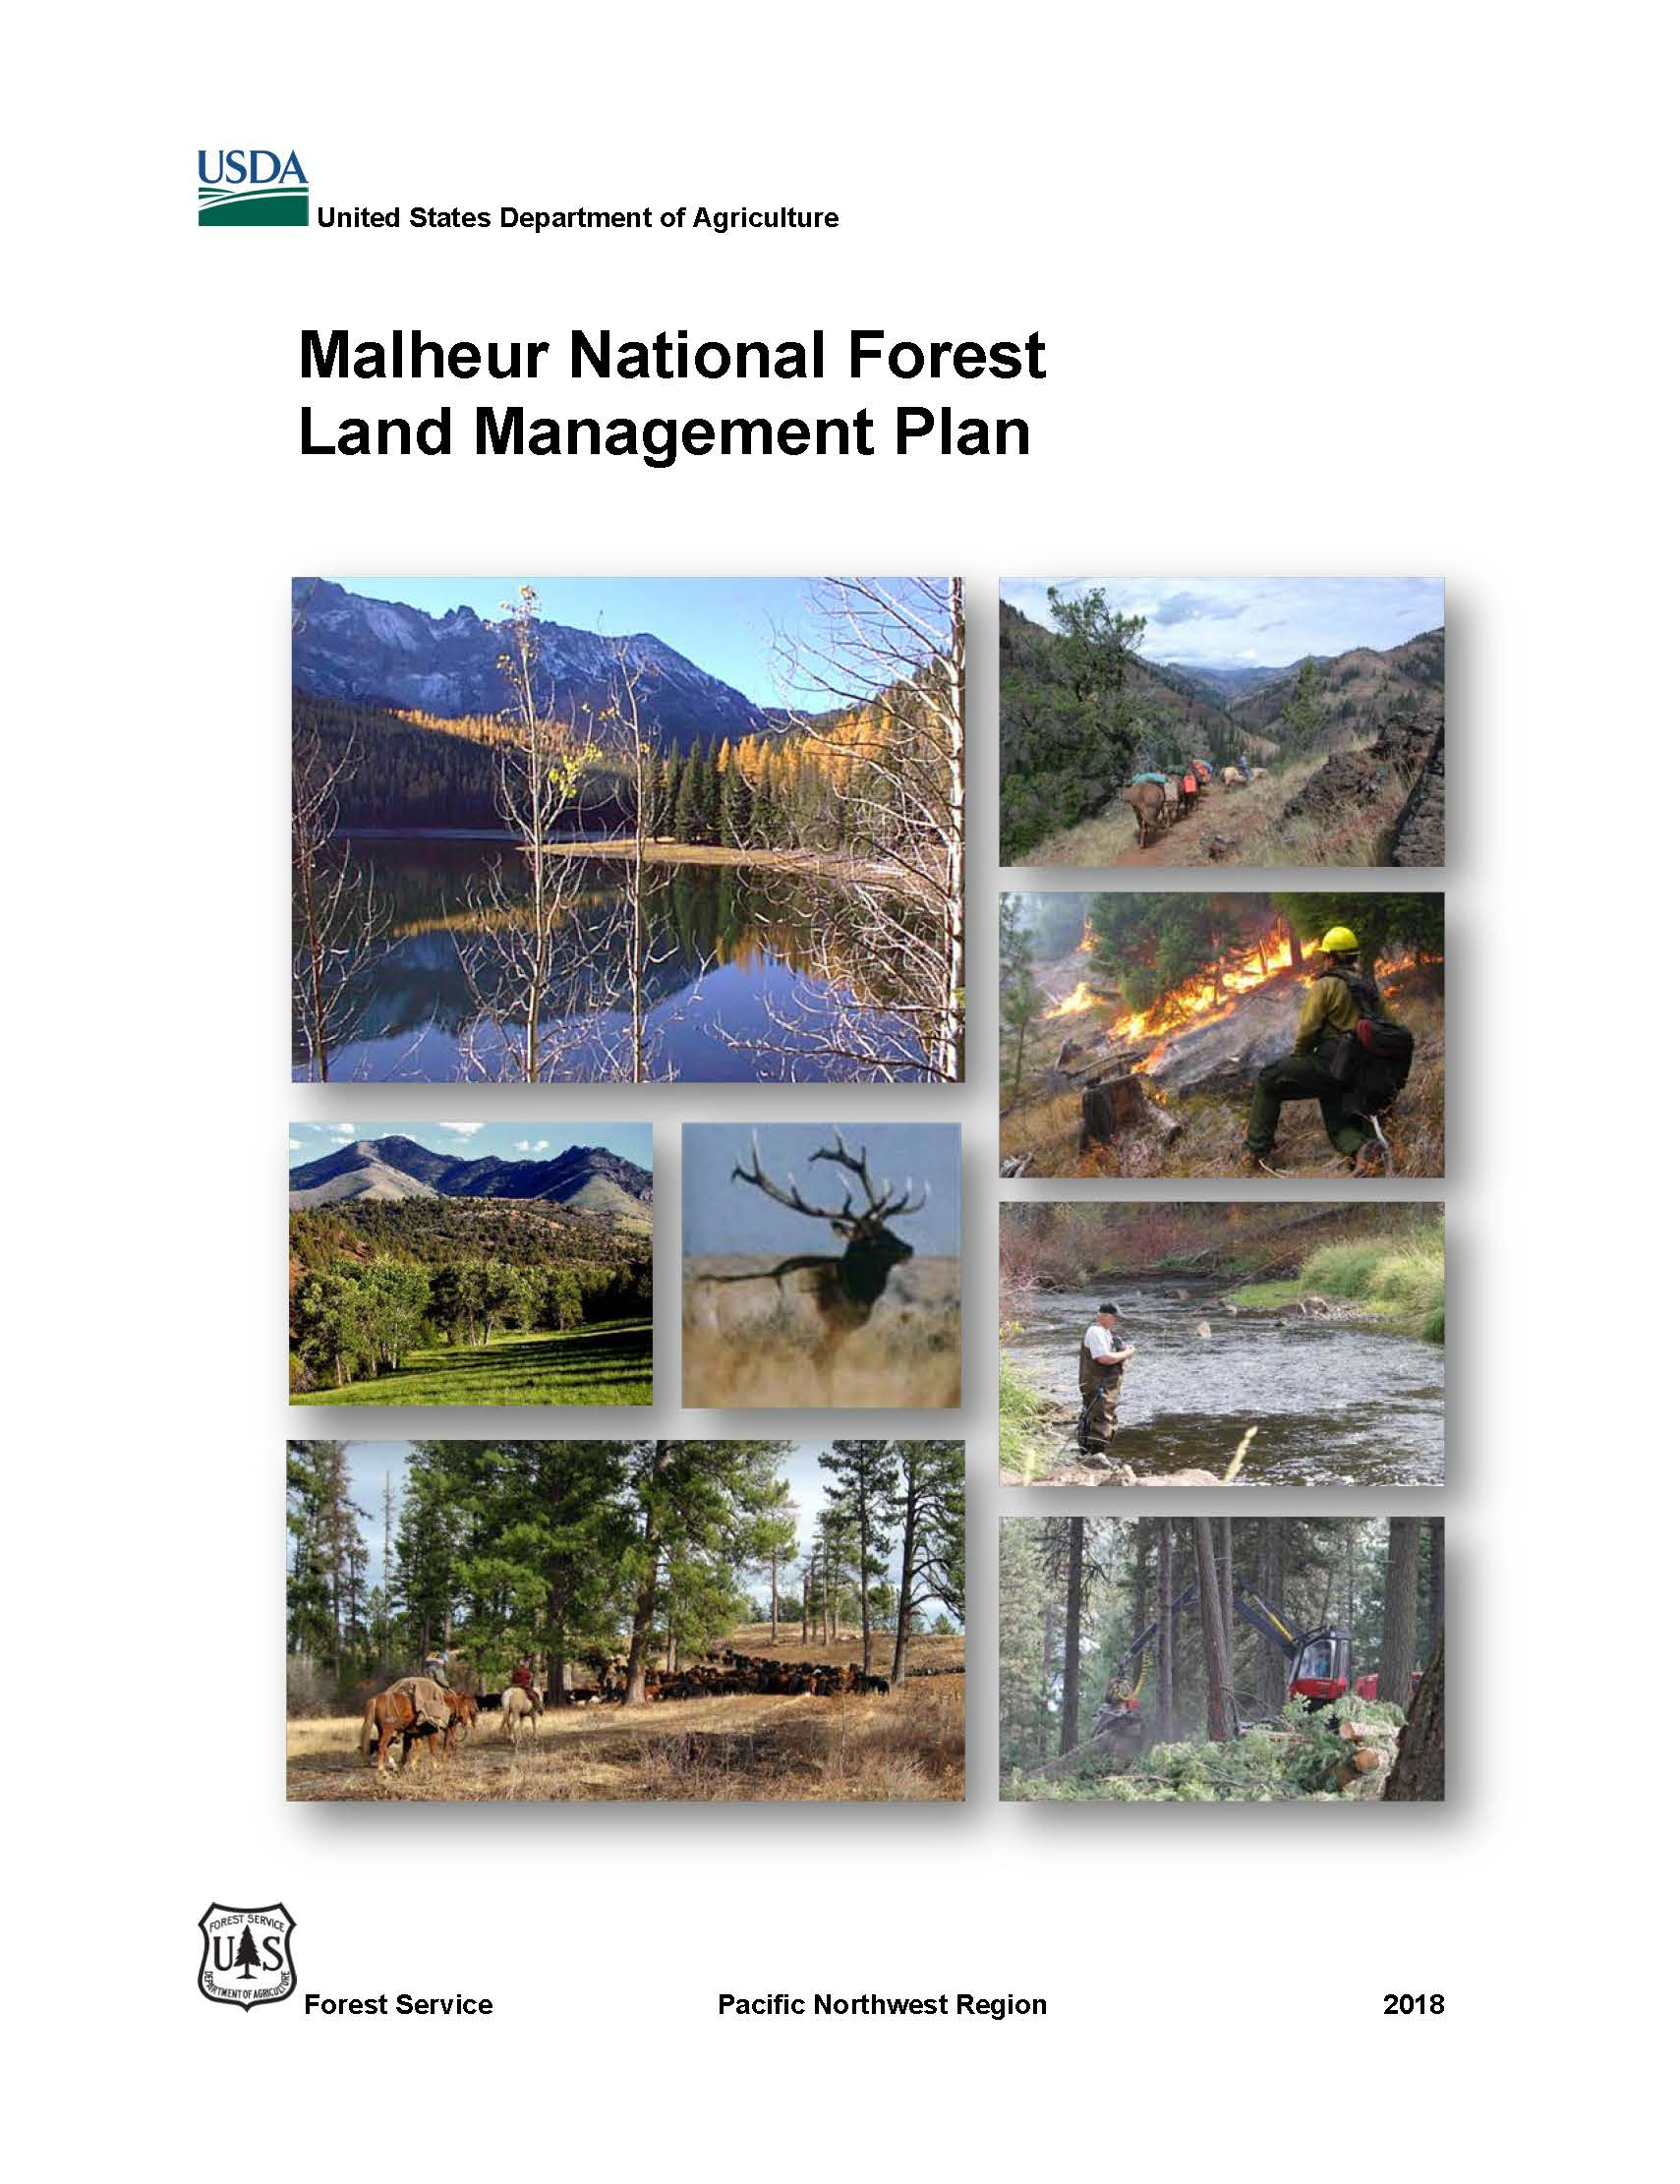 Malheur LMP Cover Art